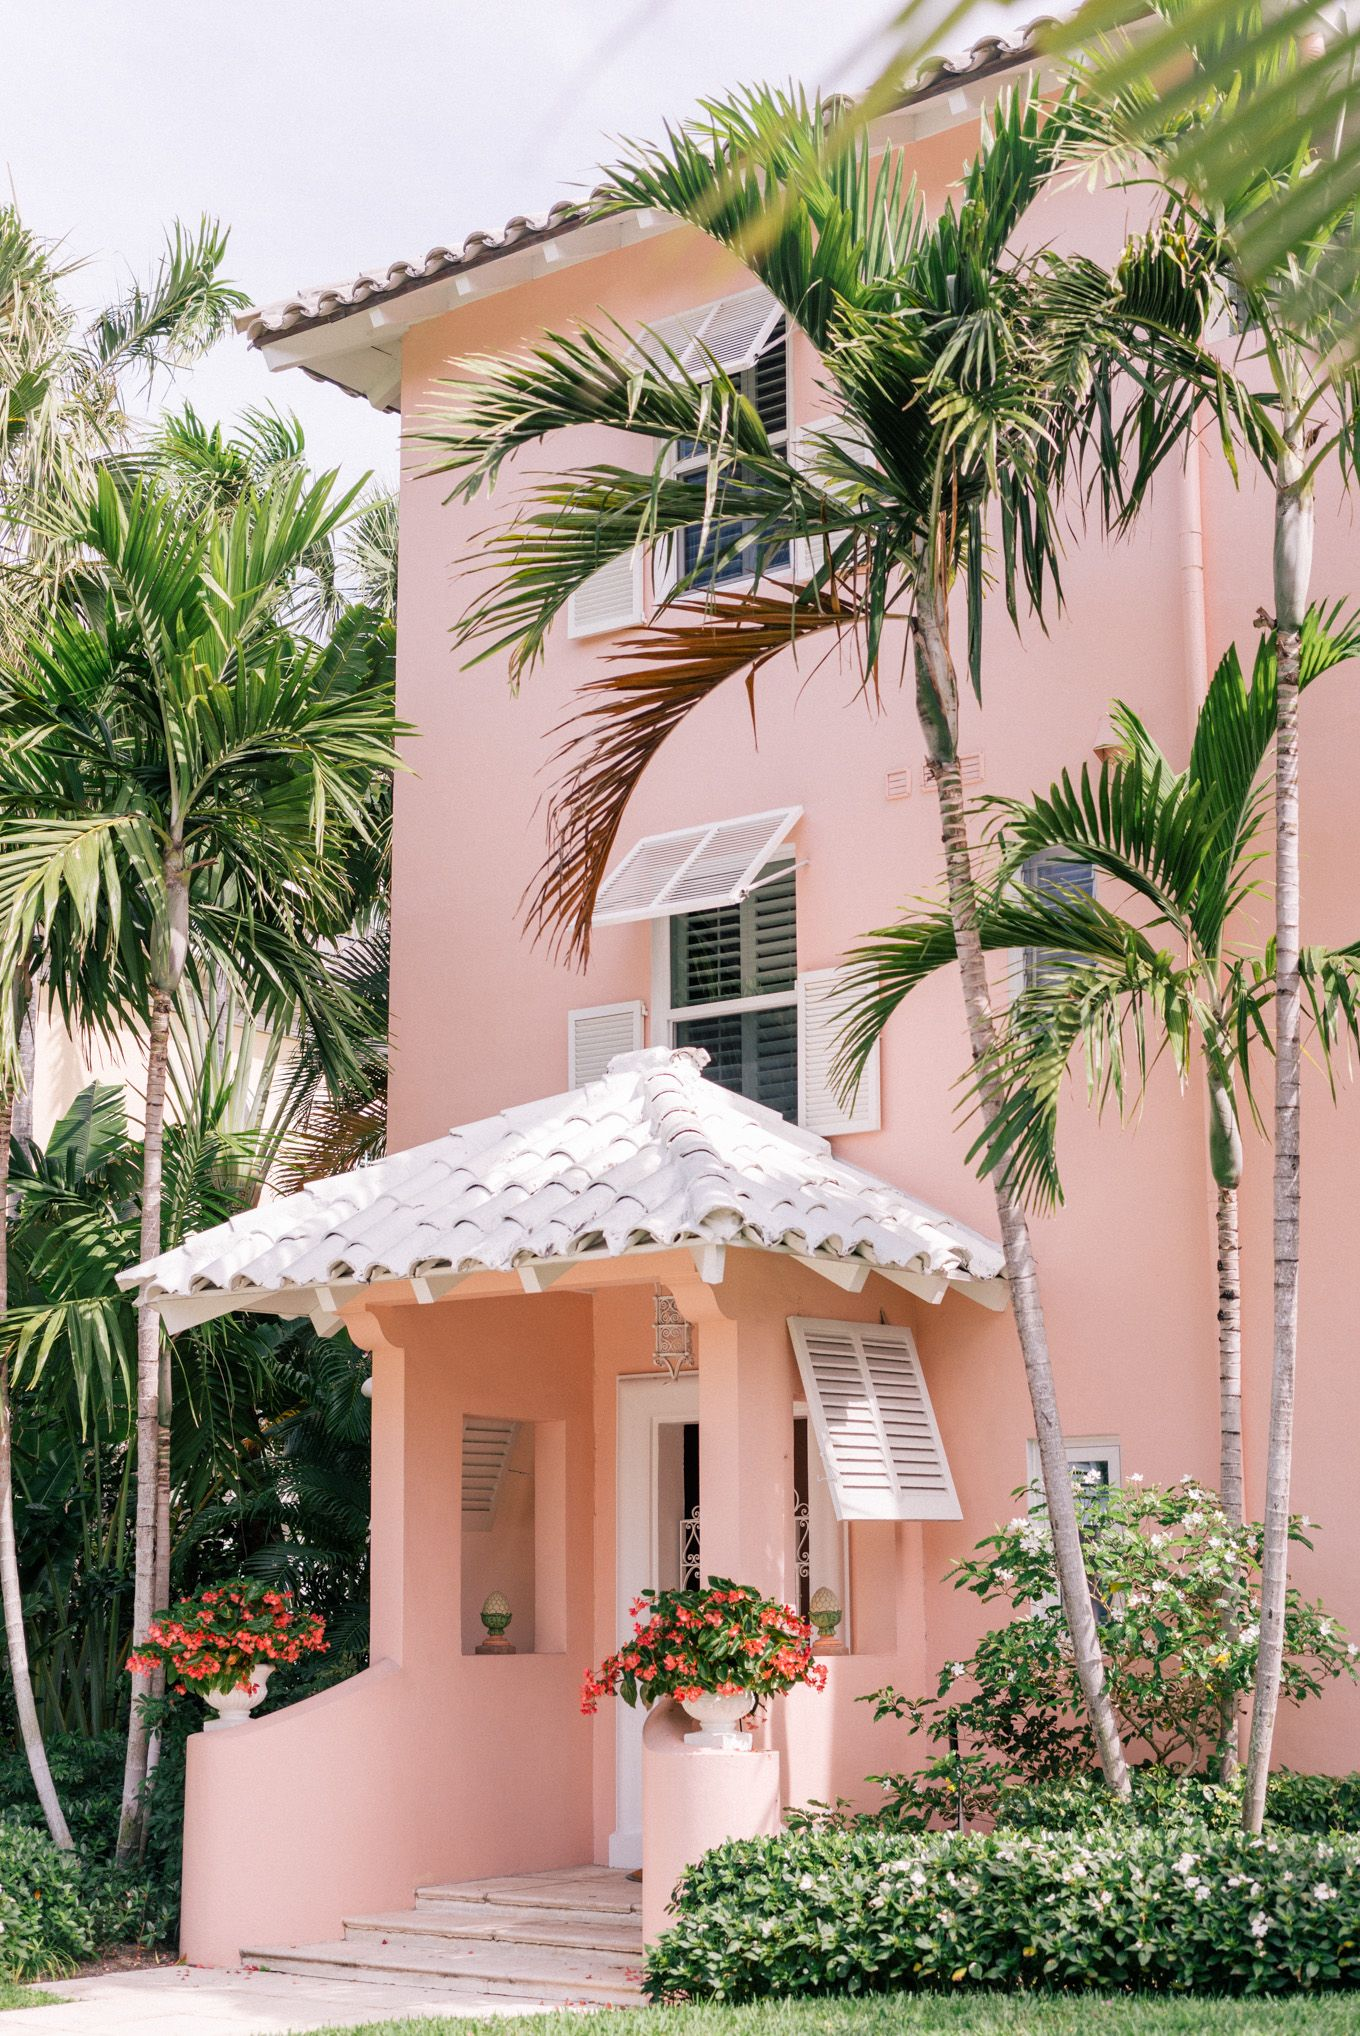 19 Exceptional Ideas To Decorate Your Landscape With Palm Trees Caribbean Homes West Indies Style British West Indies Style